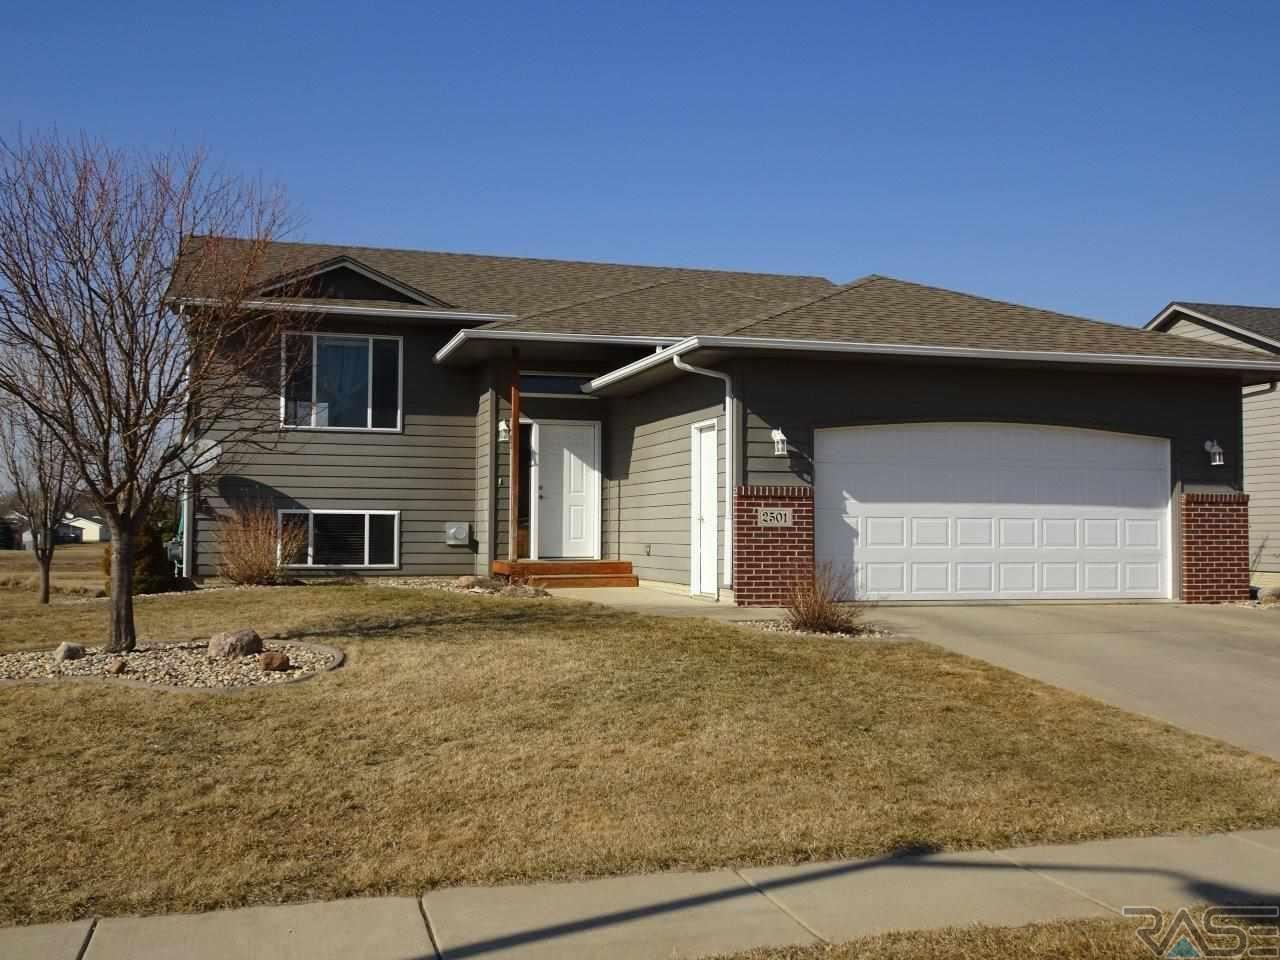 2501 N Vincent Ave, Sioux Falls, SD 57107